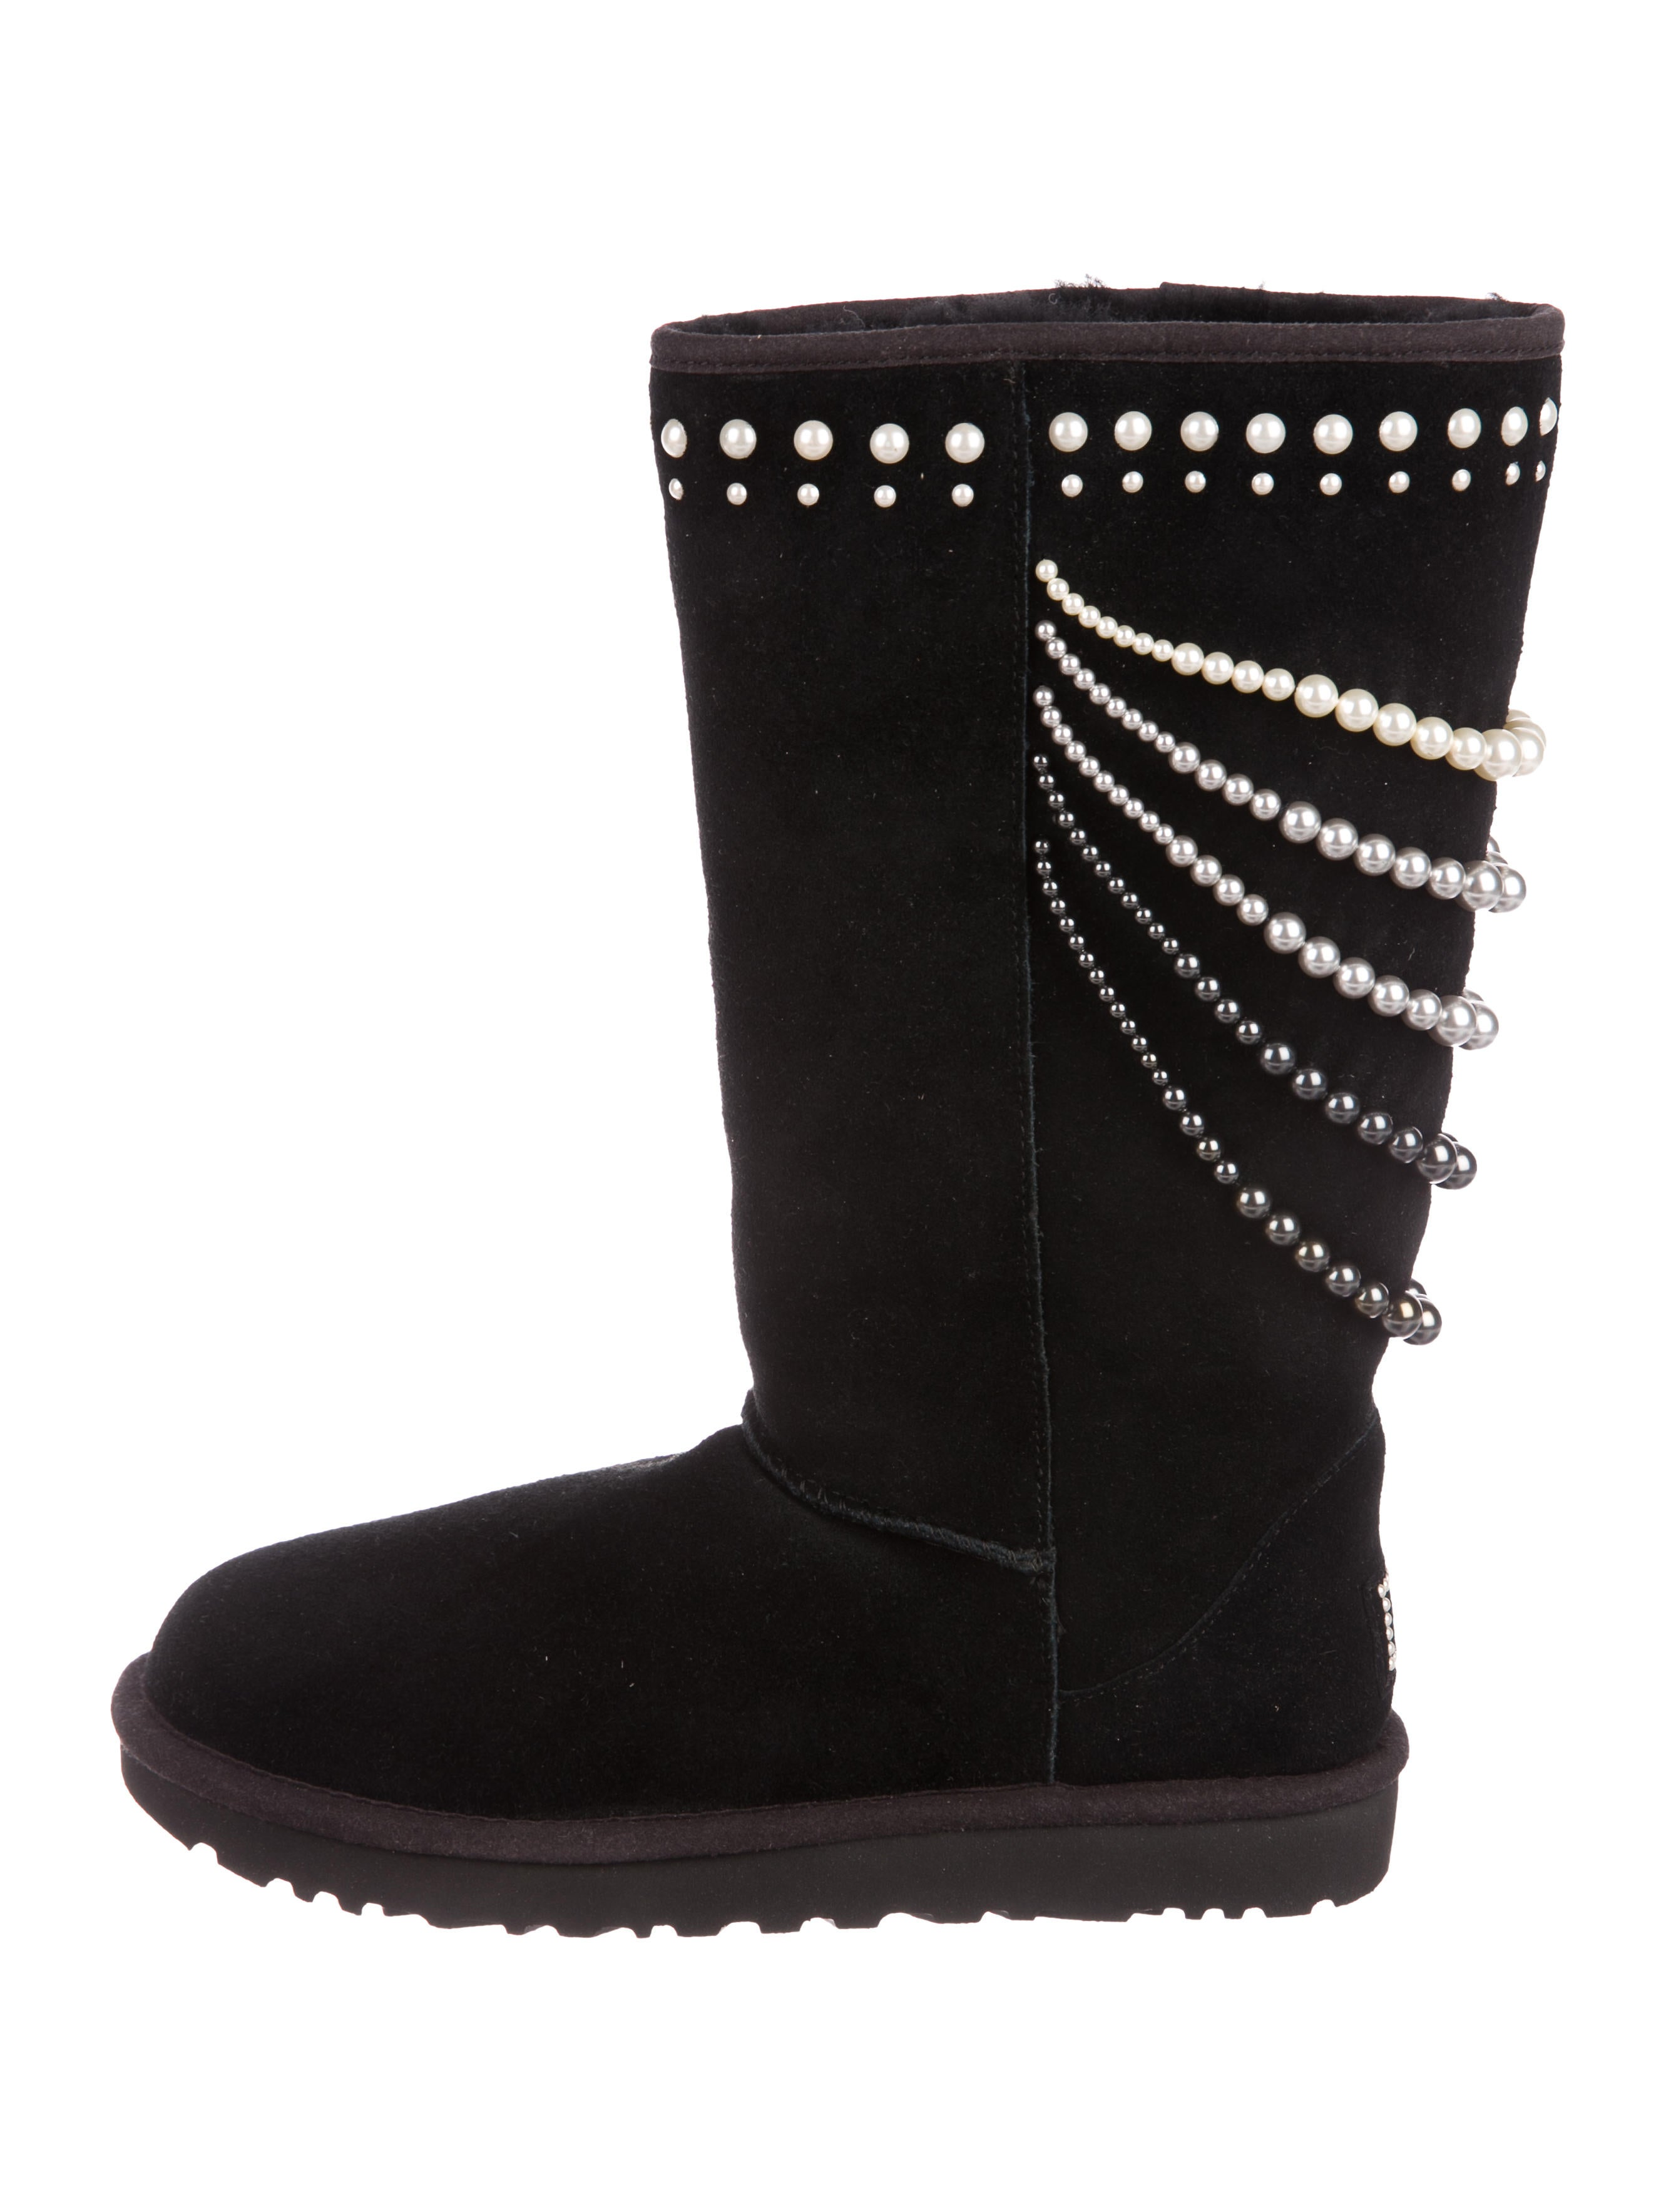 UGG Australia Calais Embellished Boots w/ Tags cheap sale low shipping fee cheap 100% authentic qy0xzu